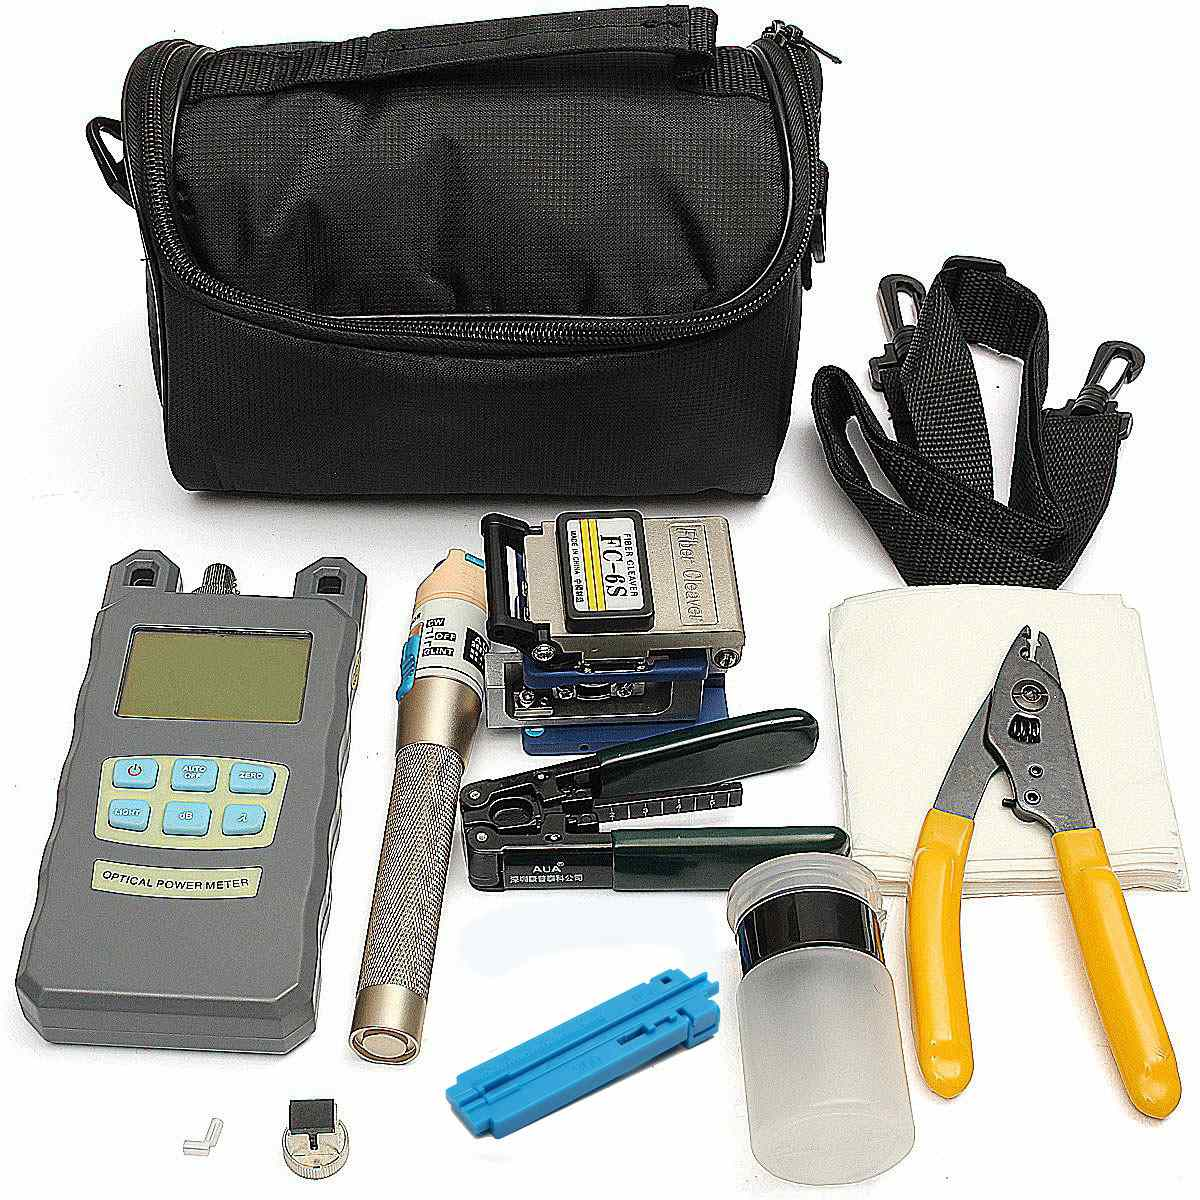 New Fiber Optic FTTH Tool Kit with FC-6S Fiber Cleaver and High Precision Optical Power Meter Fiber Optic Stripper ray tricker optoelectronics and fiber optic technology